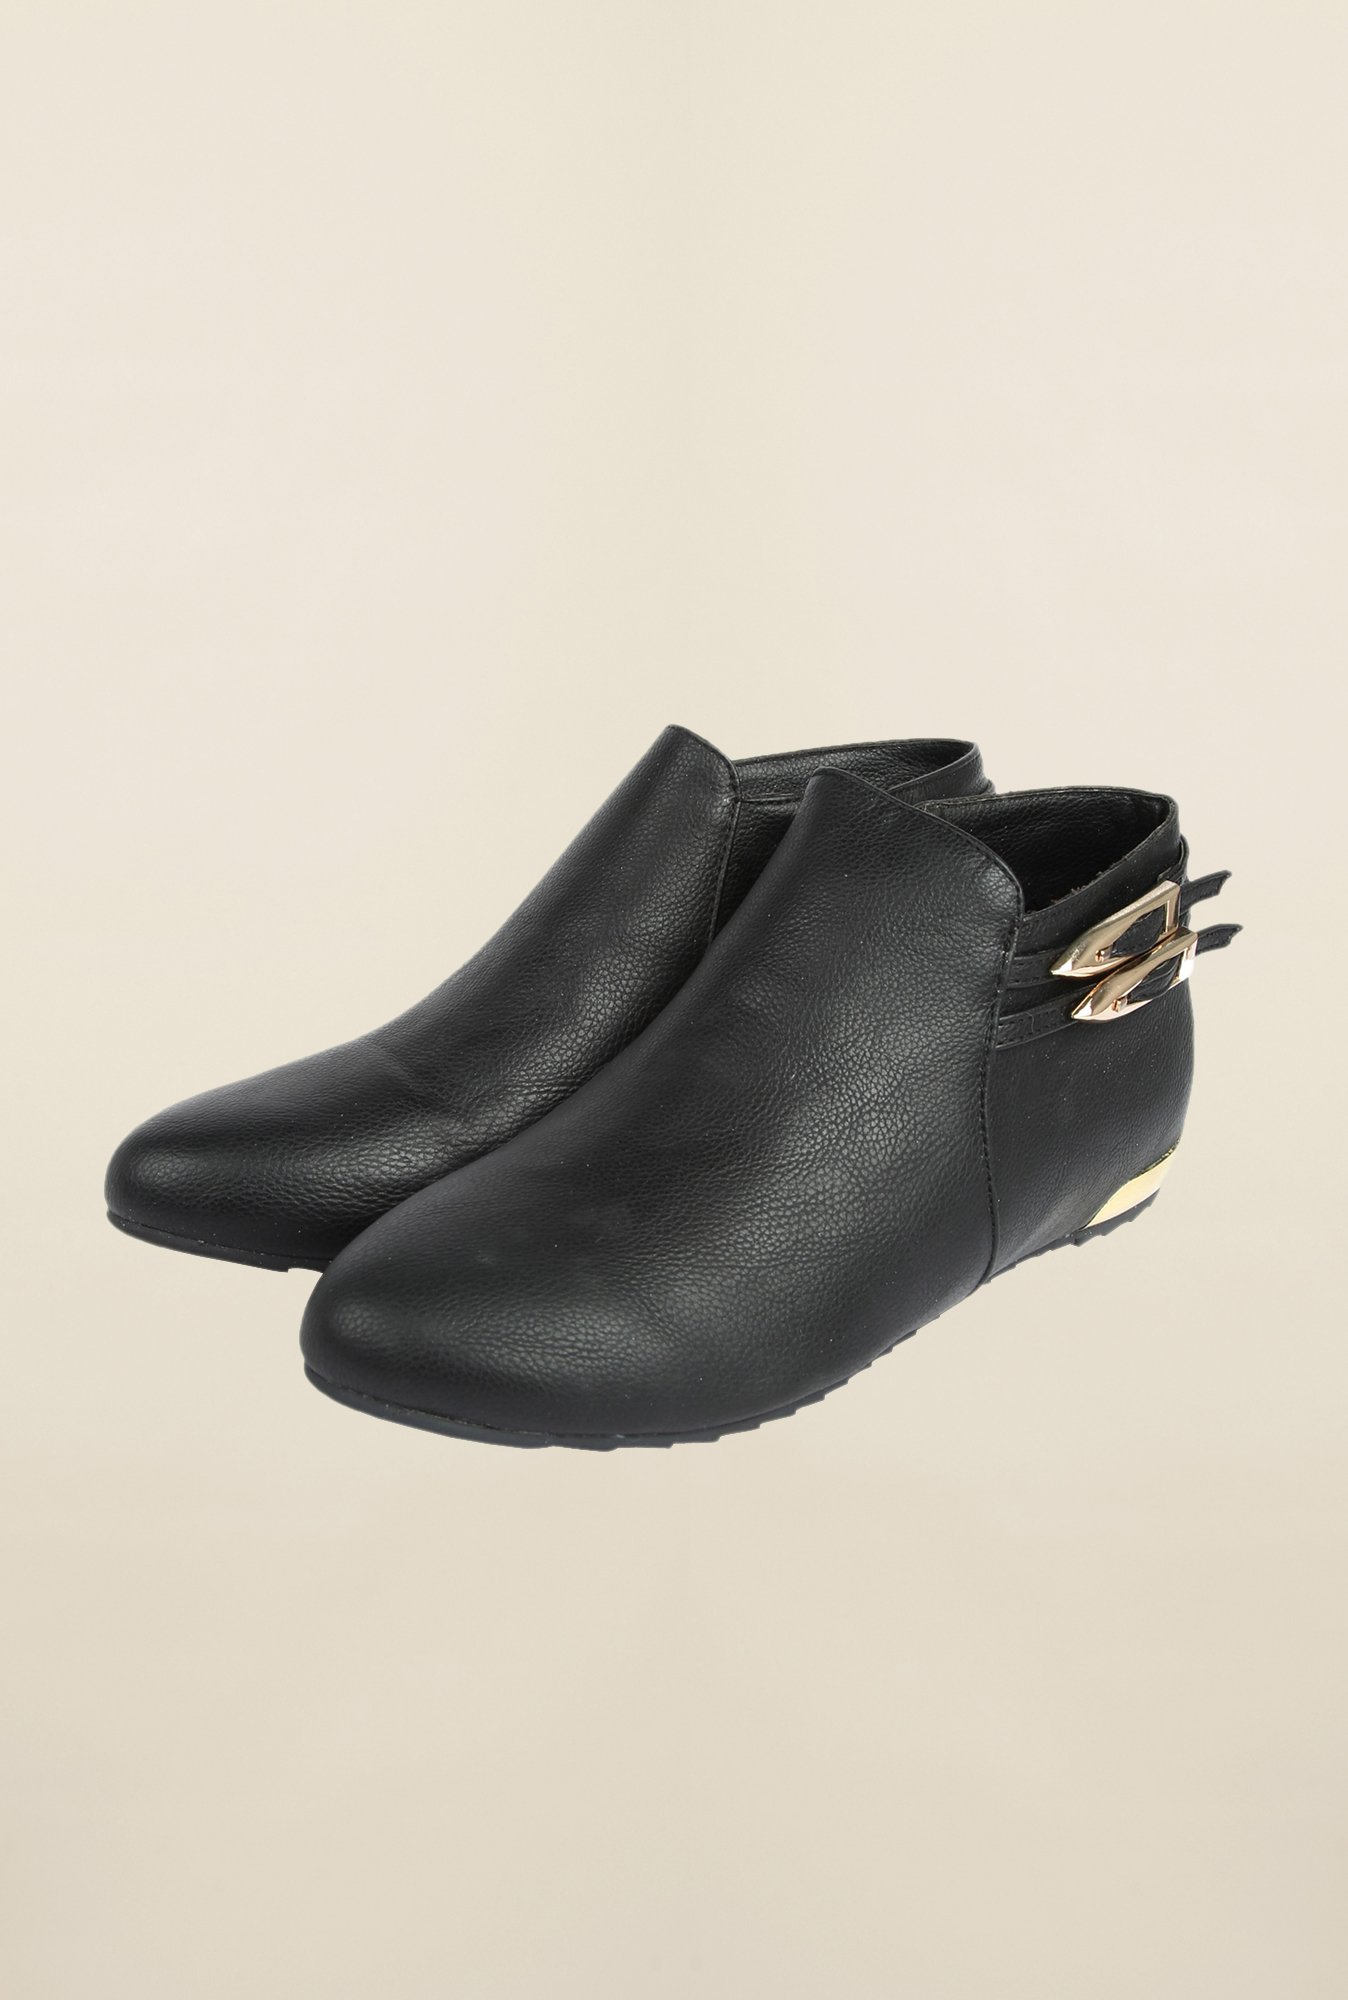 Cobblerz Black Leather Booties